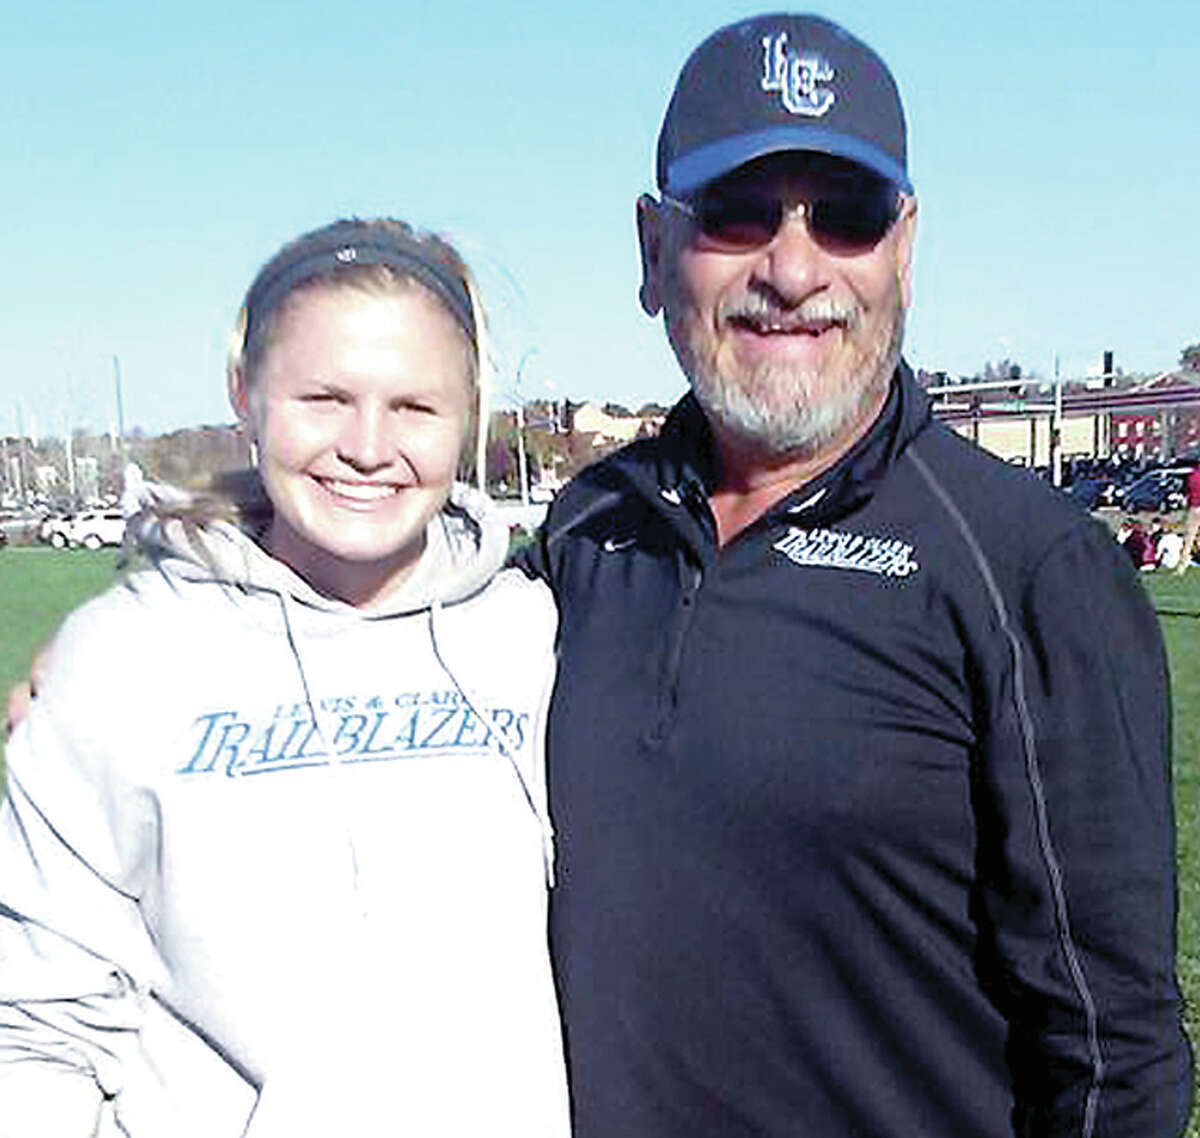 Lewis and Clark goalie coach Brian Korbesmeyer shares a laugh with LC goalie Natalie Otten. Korbesmeyer, is in his second stint at LC, with 14 years as head women's soccer coach at SIUE in between. He has said this is his final season as a coach.